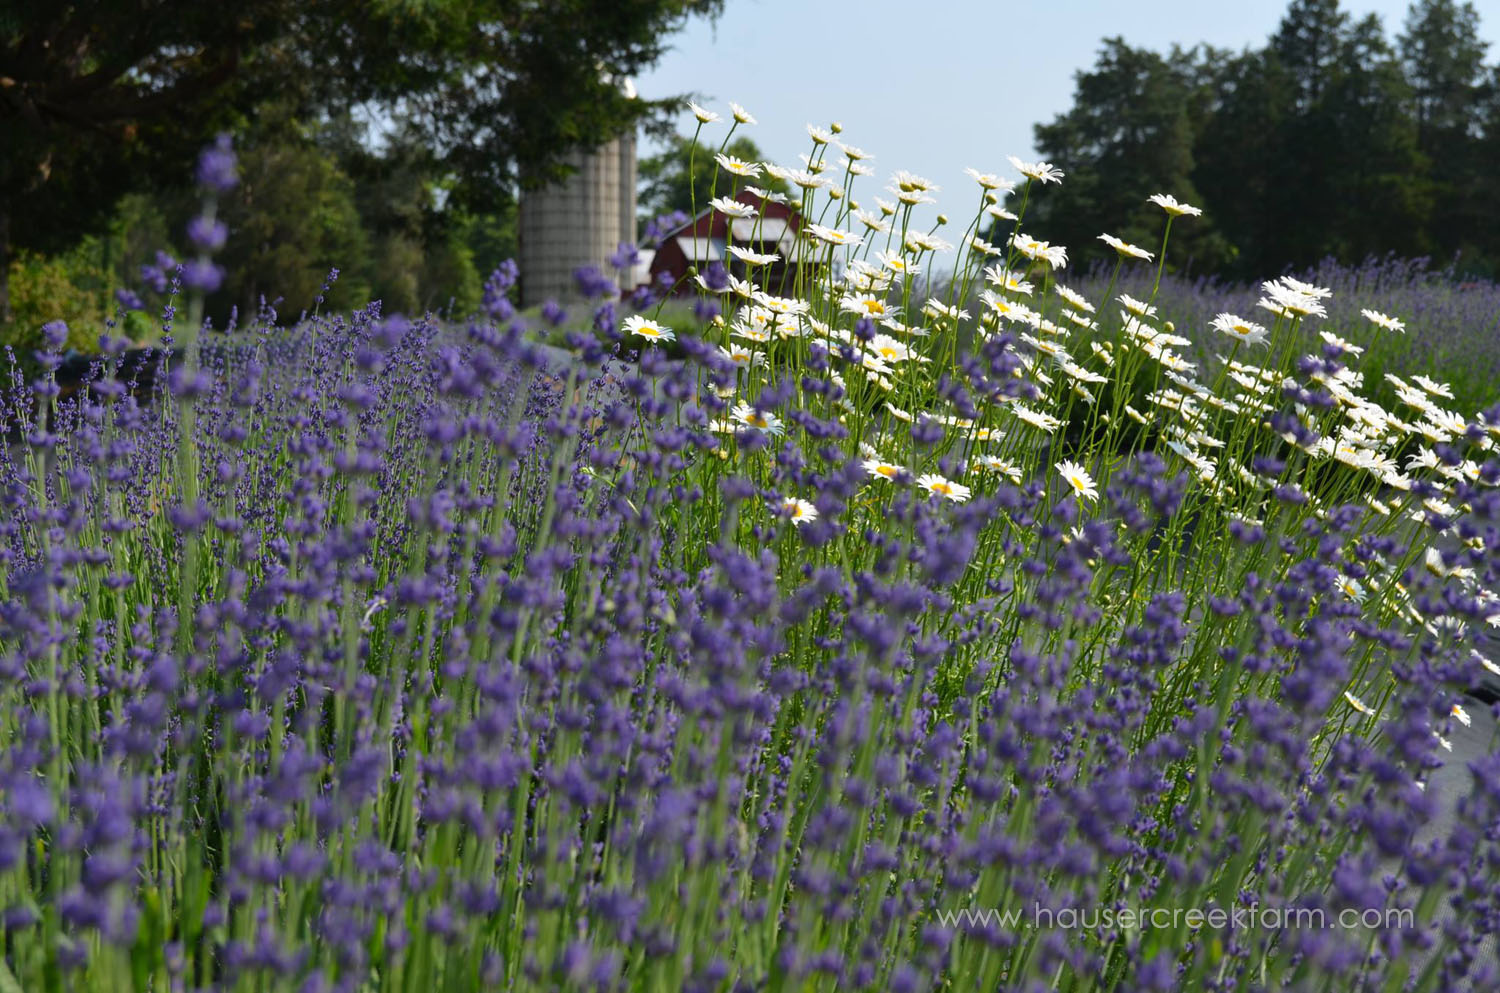 Hidcote Lavender and Daisies Growing in a Field